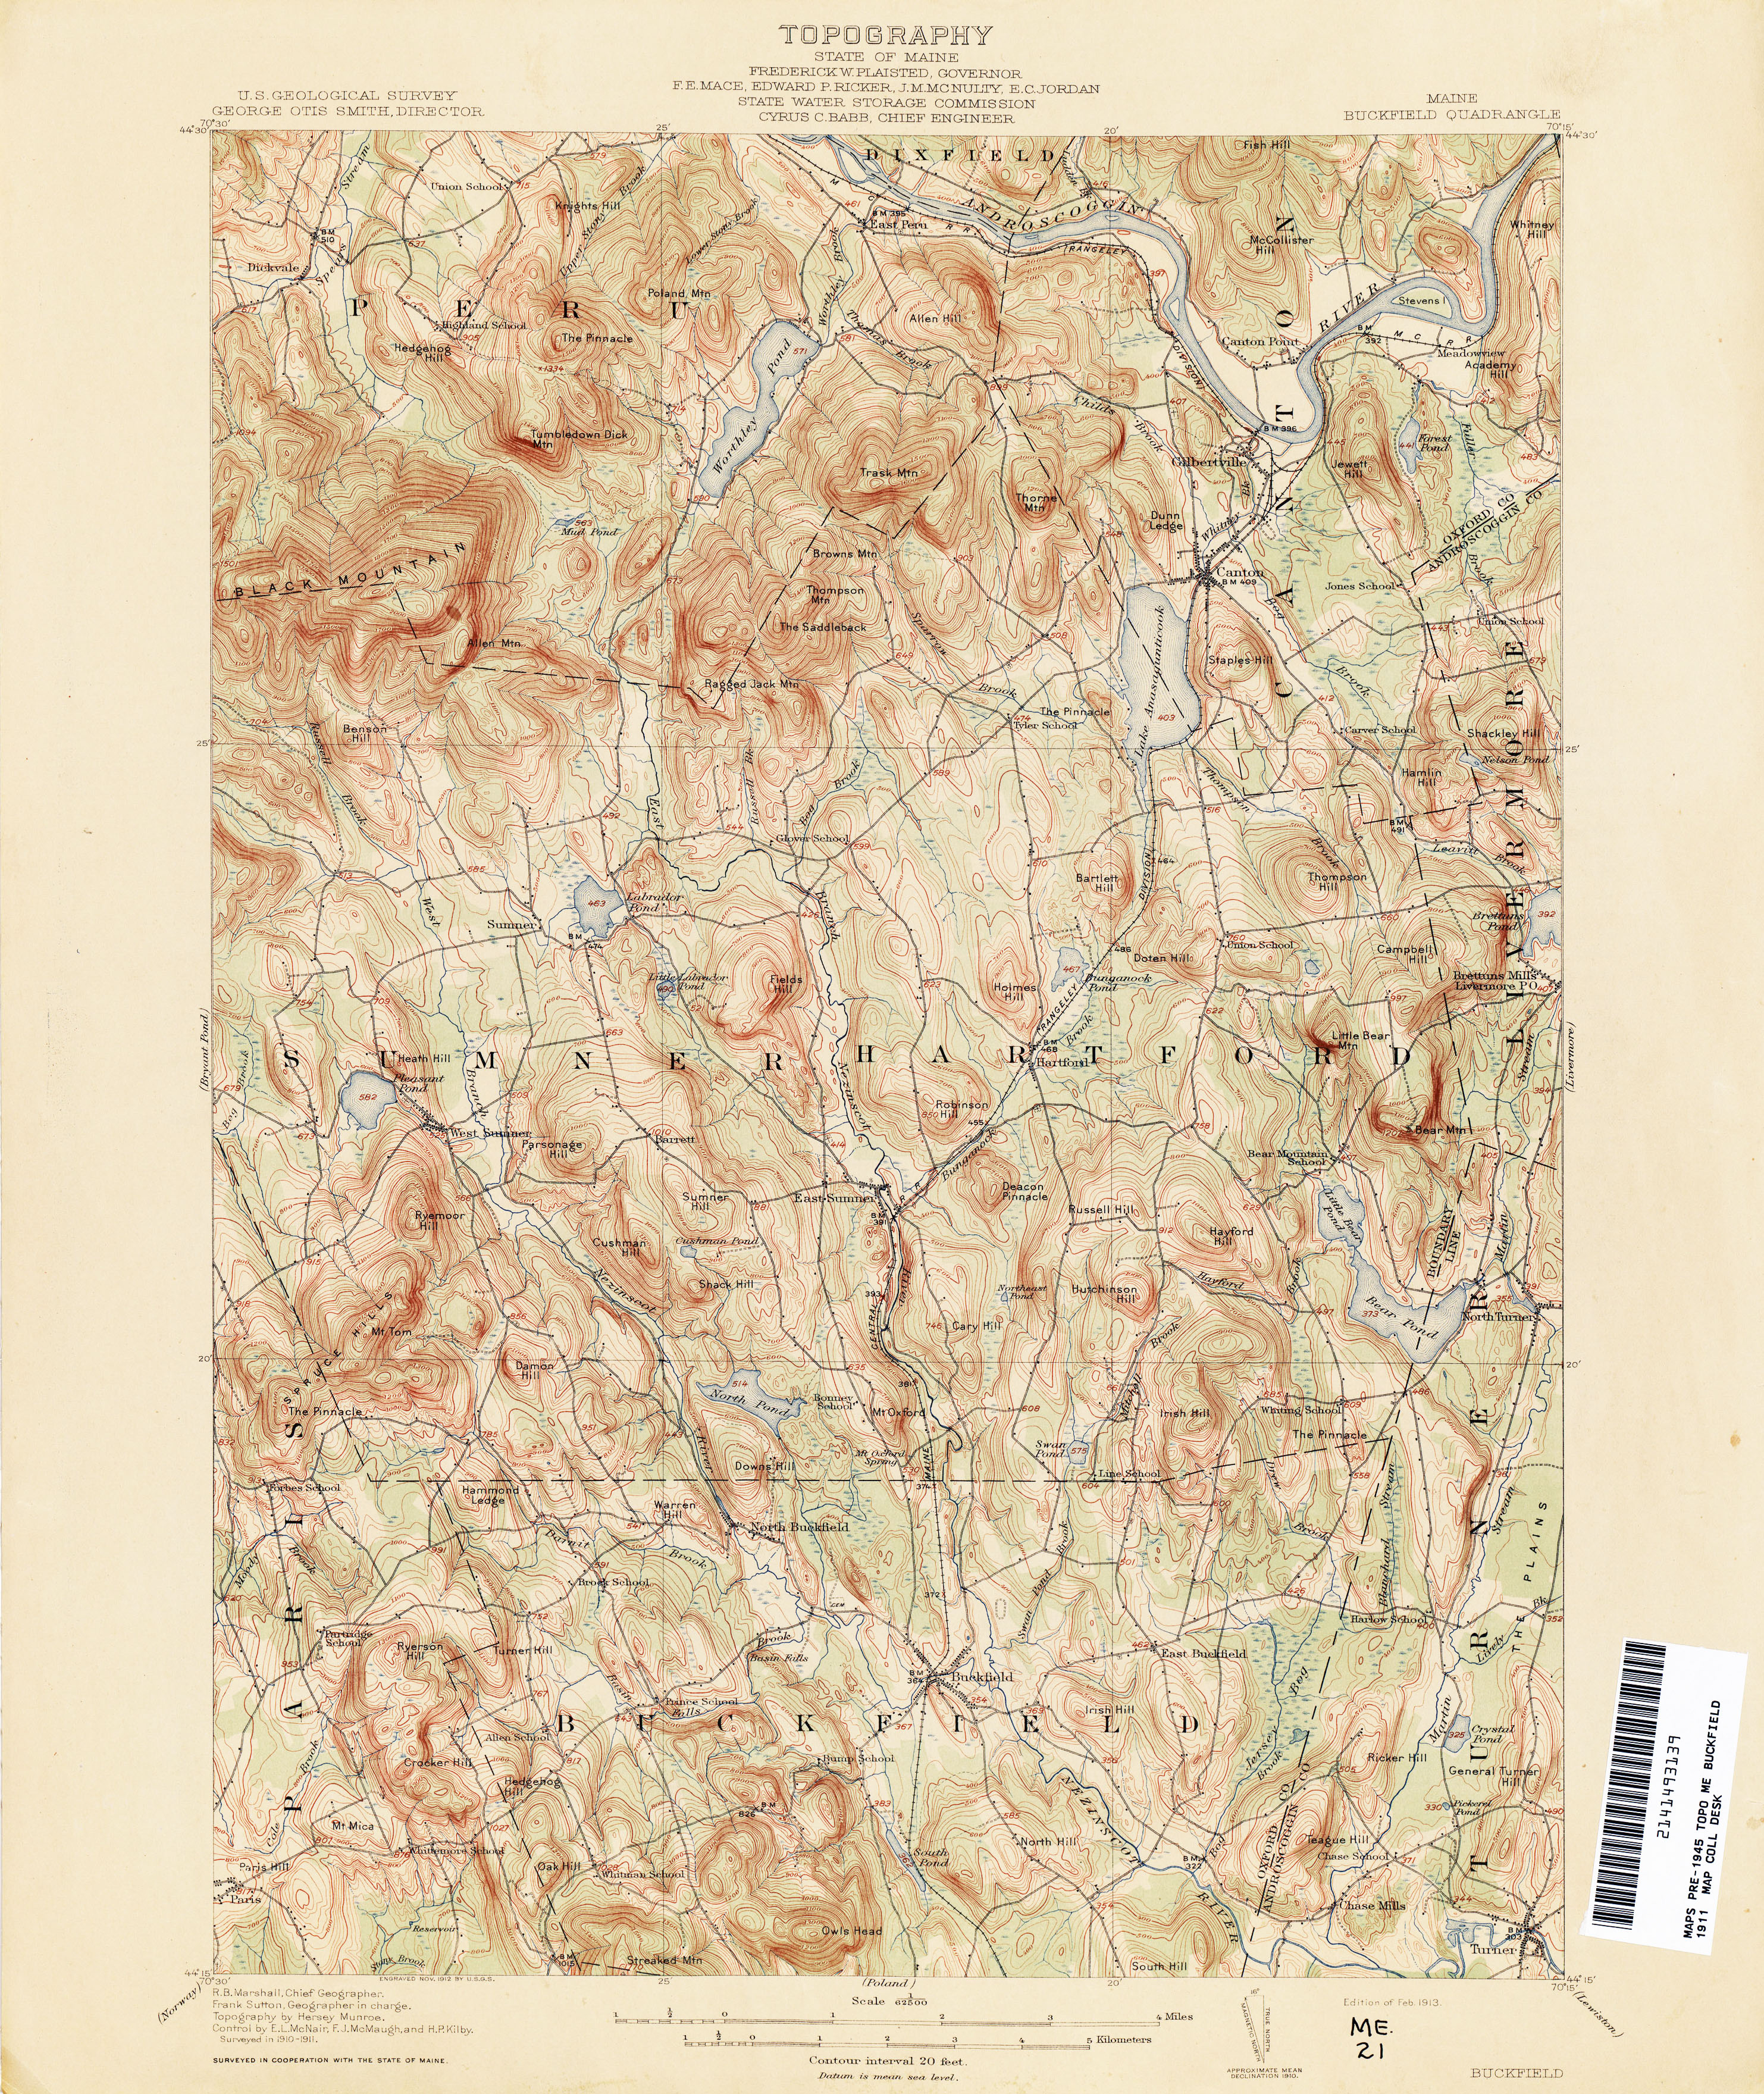 Maine Historical Topographic Maps Perry Castaneda Map Collection